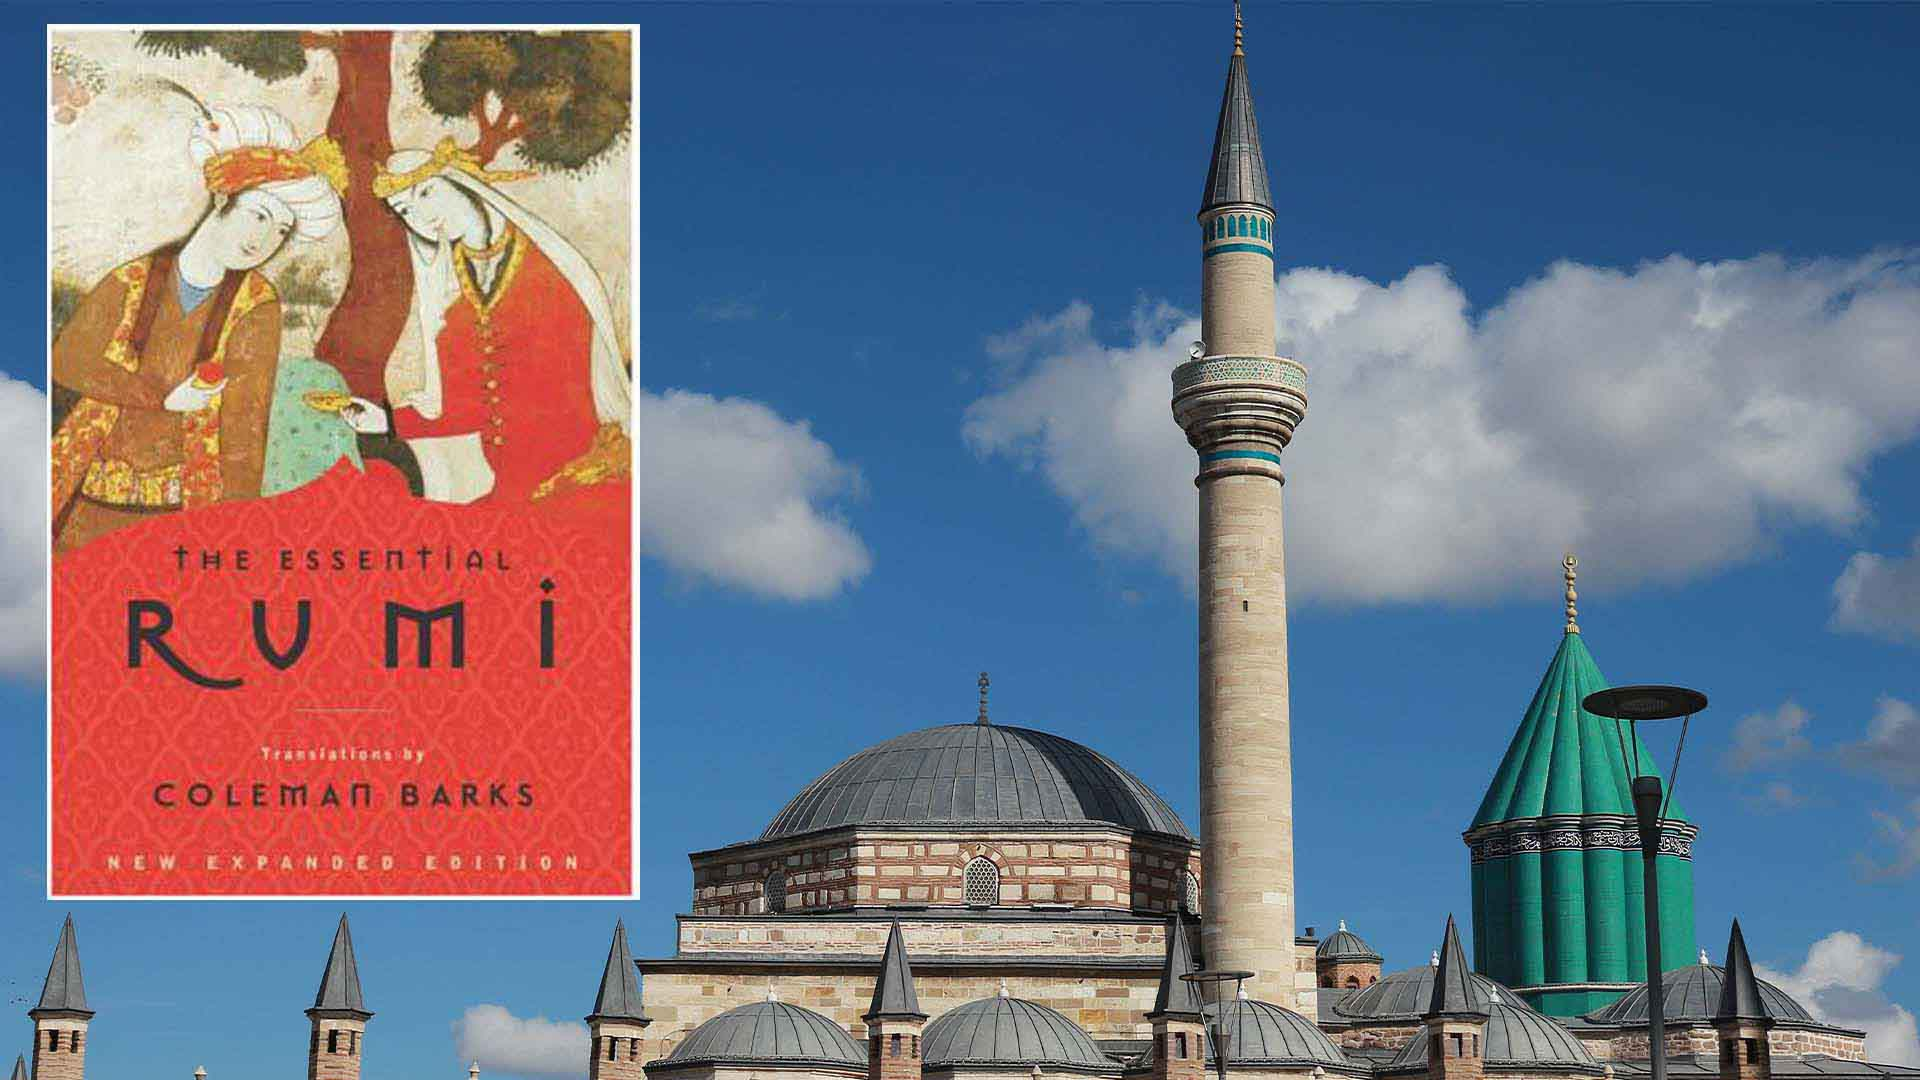 The Essential Rumi - Famous books